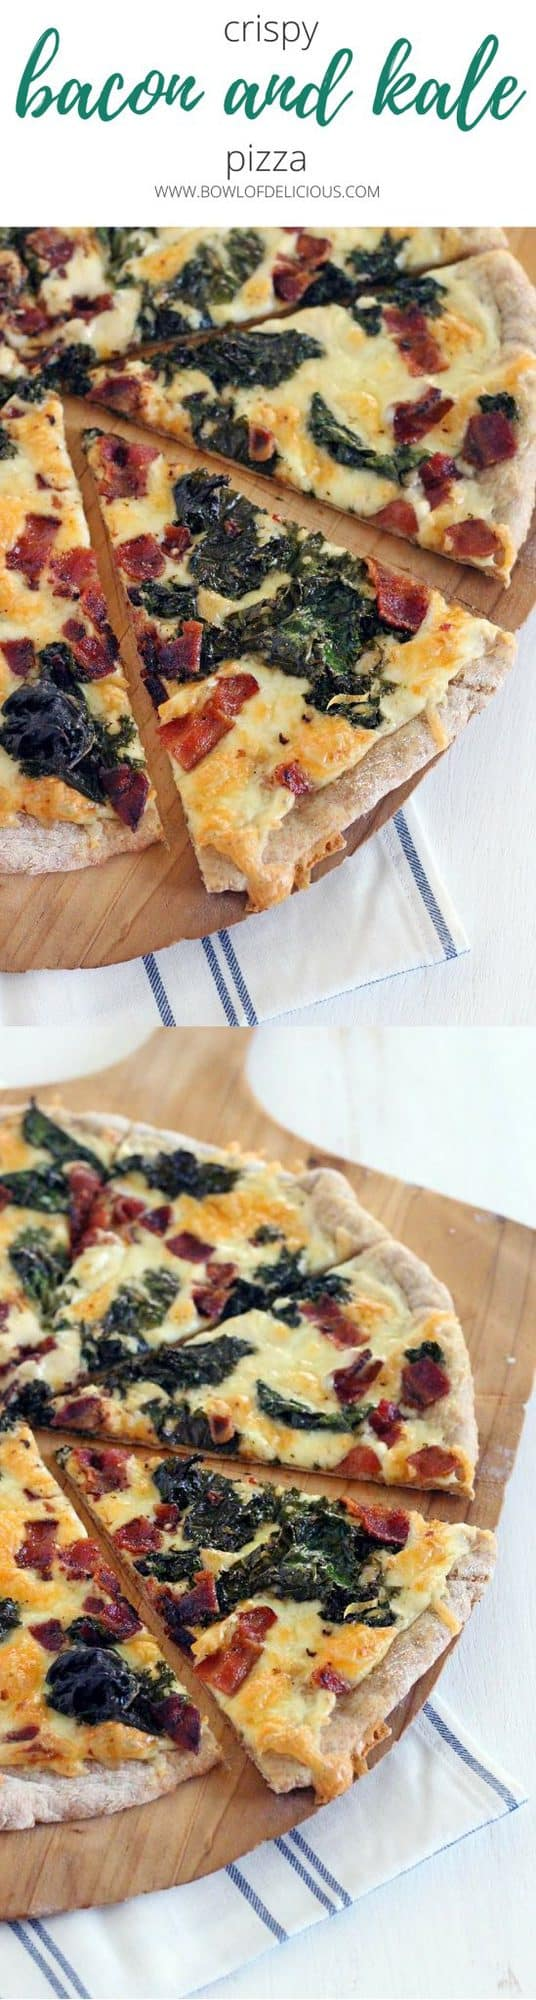 This Bacon and Kale Pizza is topped with super crispy kale and bacon pieces. This recipe comes together with only 5 ingredients in under 30 minutes! #pizza #kale #bacon